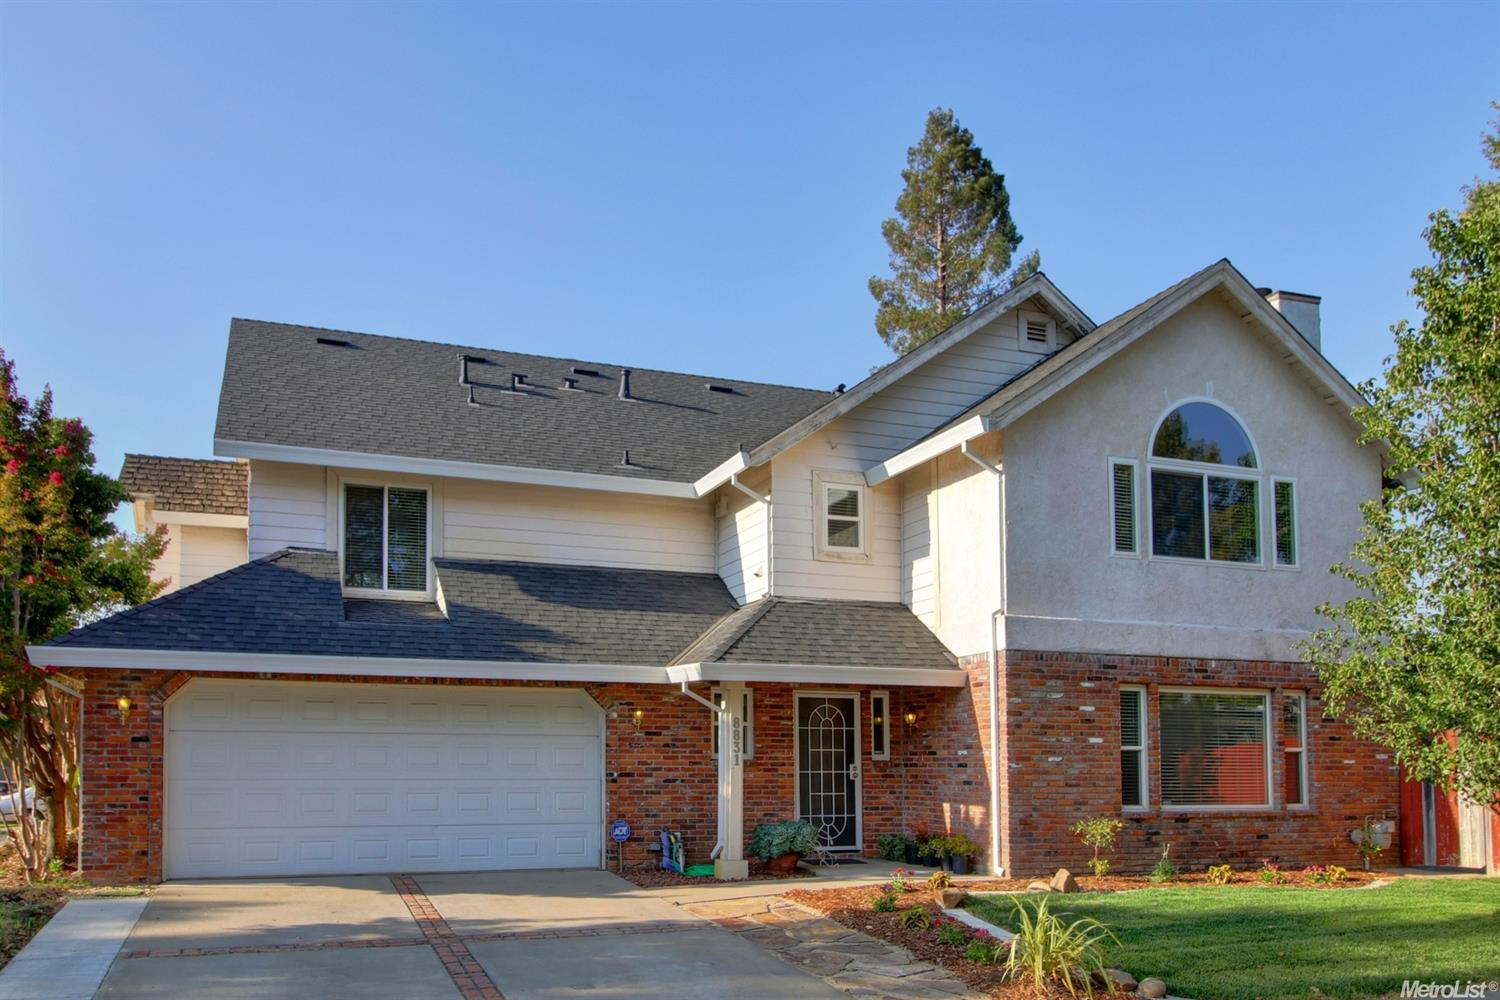 Valley Oak Lane, ELK GROVE, CA 95624